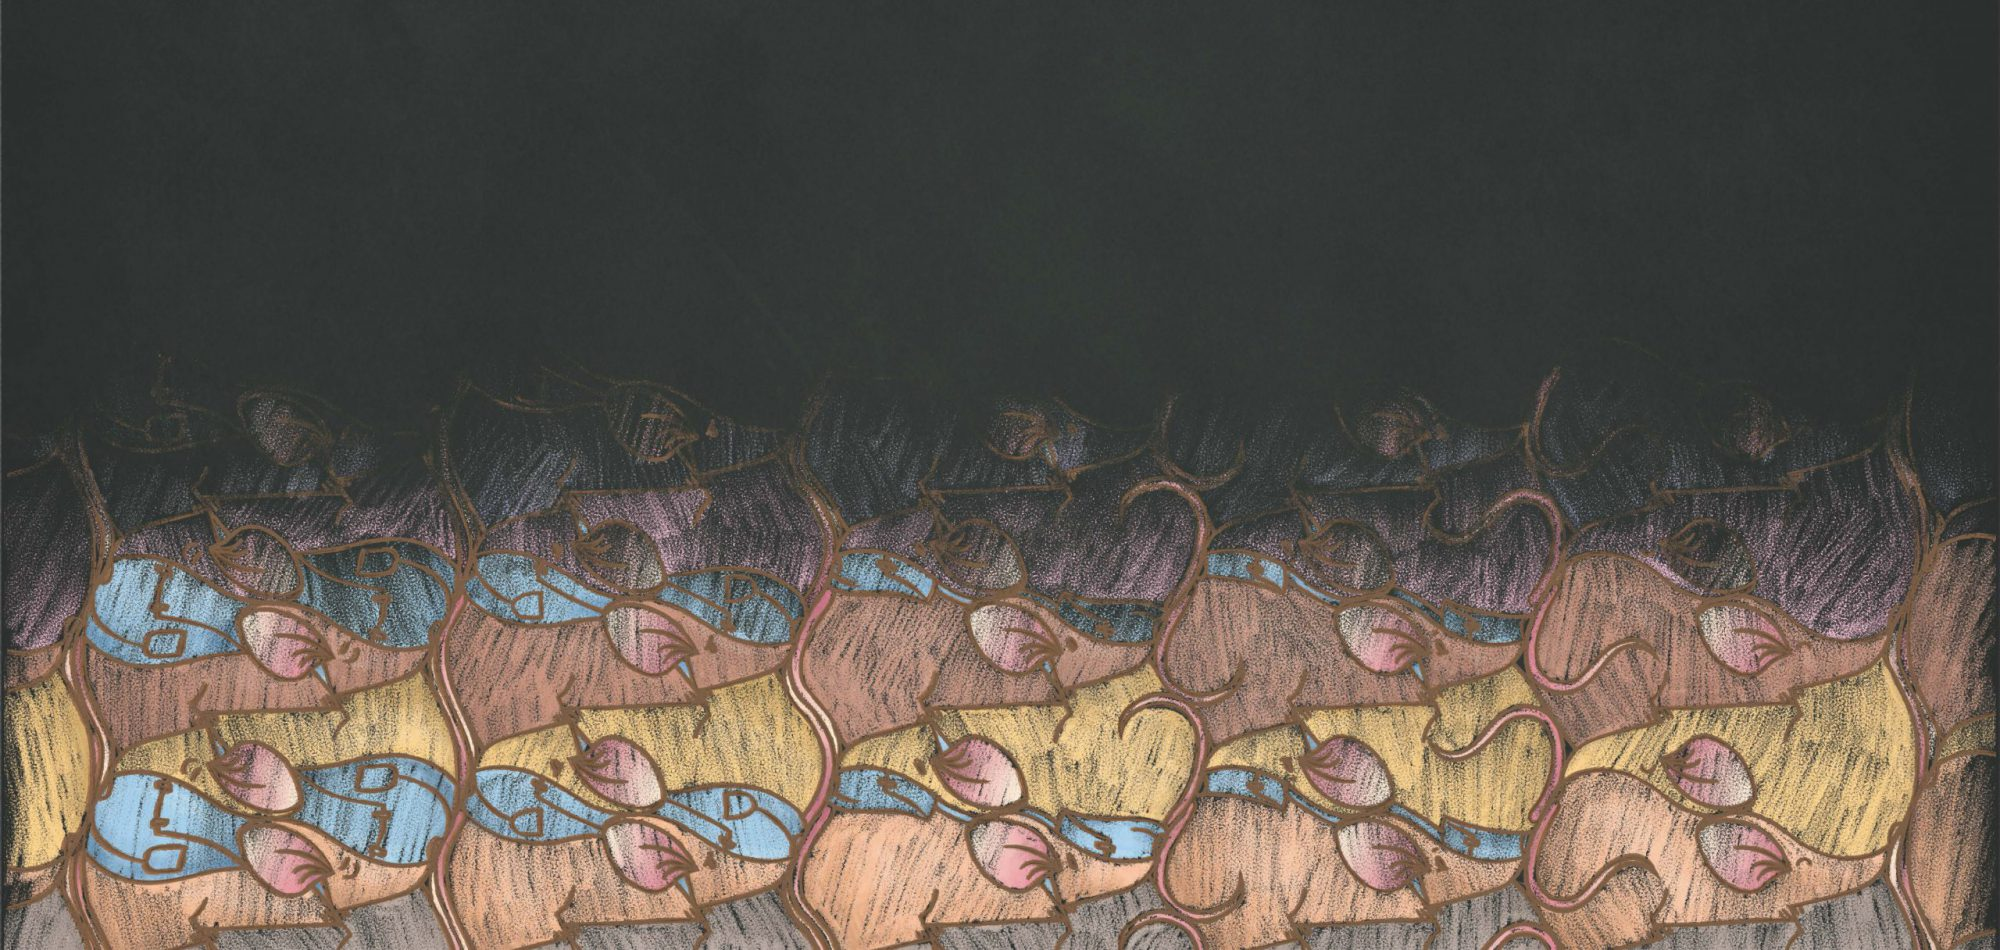 Mice in Escher tessellation, designed by Sylwia Regulska